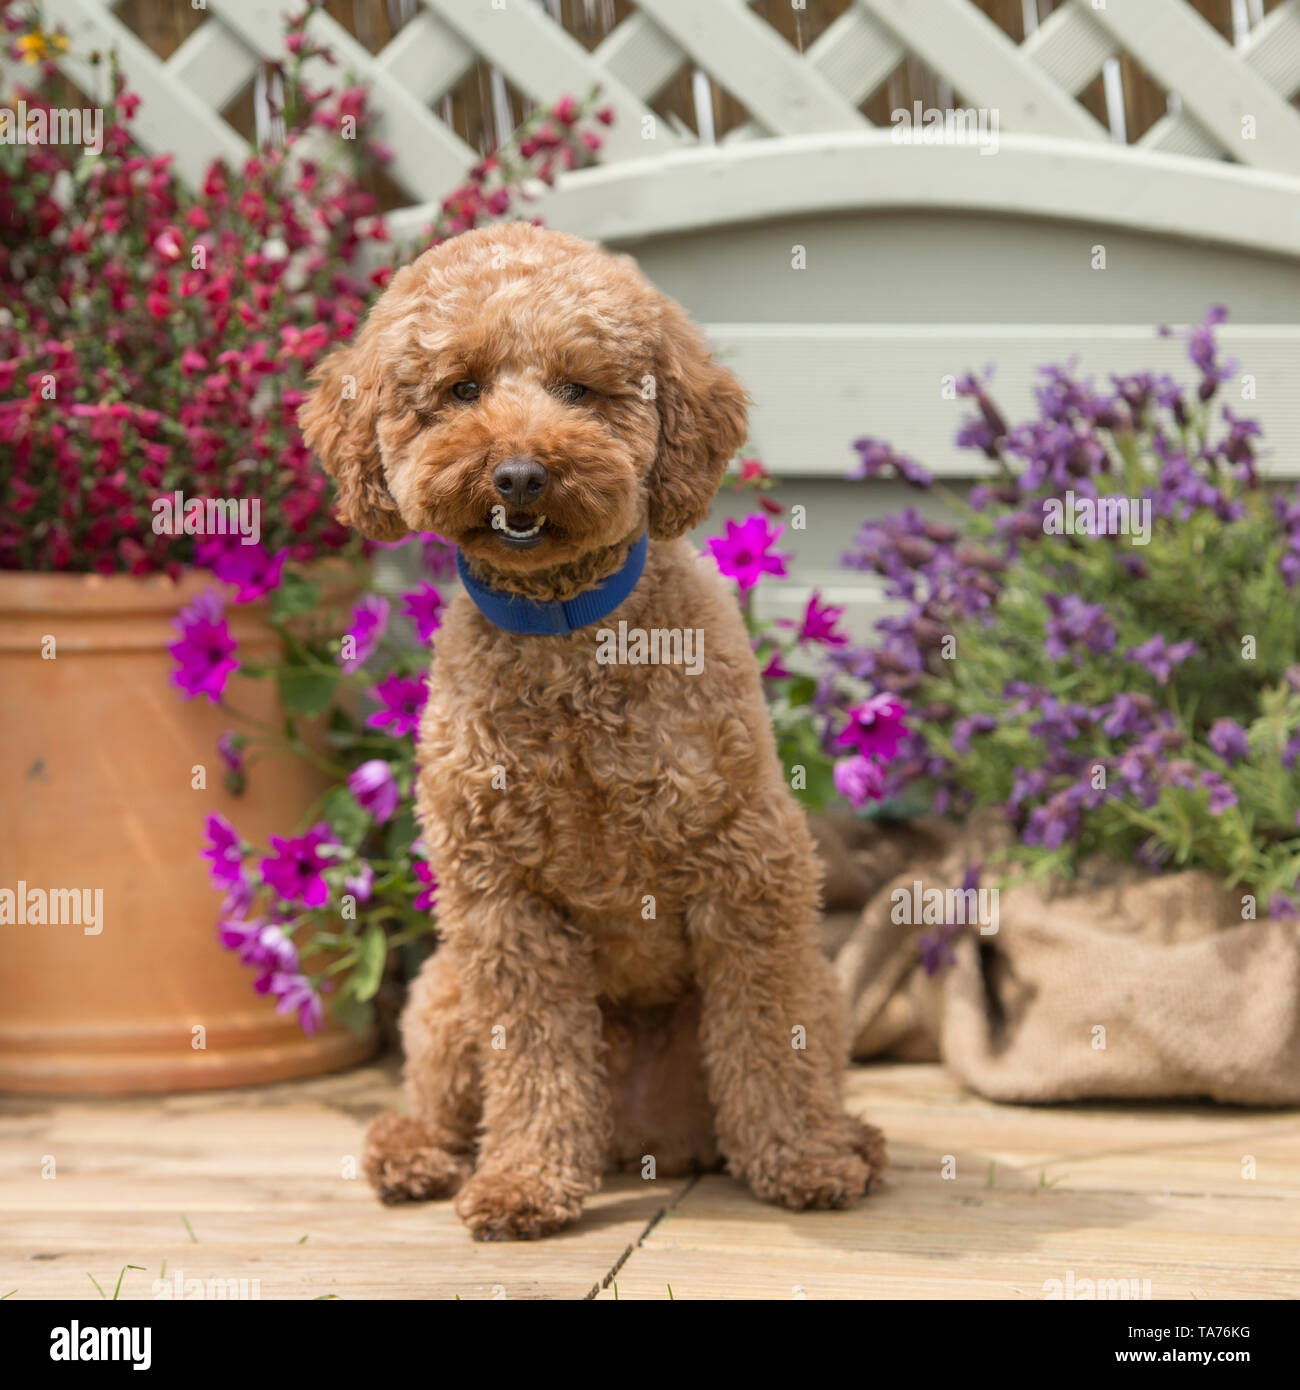 Apricot Miniature Poodle Dog High Resolution Stock Photography And Images Alamy